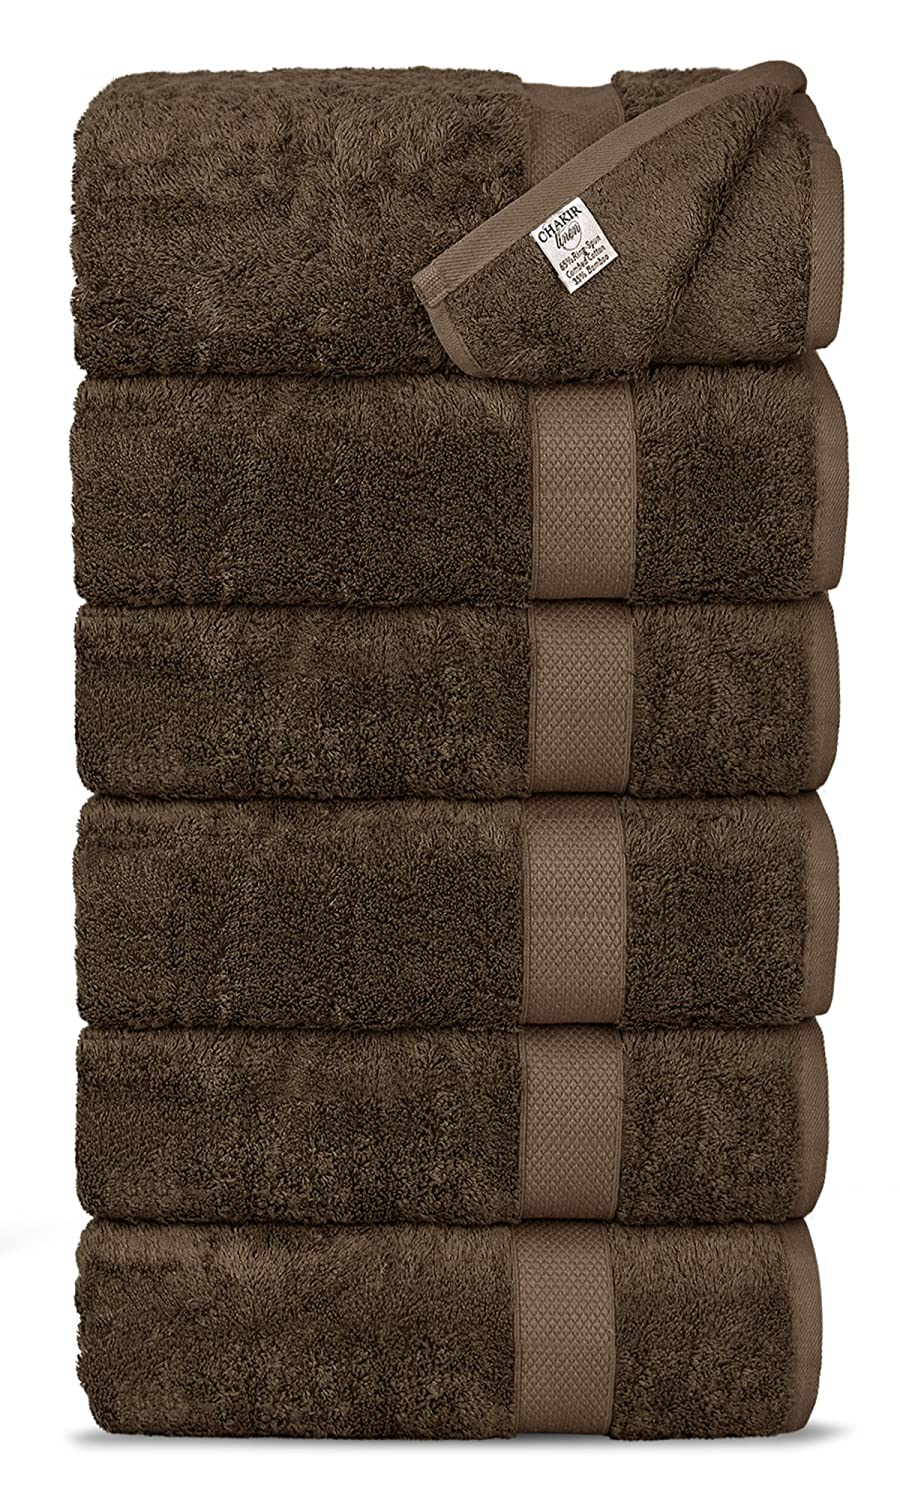 White Absorbent and Eco-Friendly Chakir Turkish Linens Luxury Ultra Soft Bamboo 6-Piece Towel Set Soft